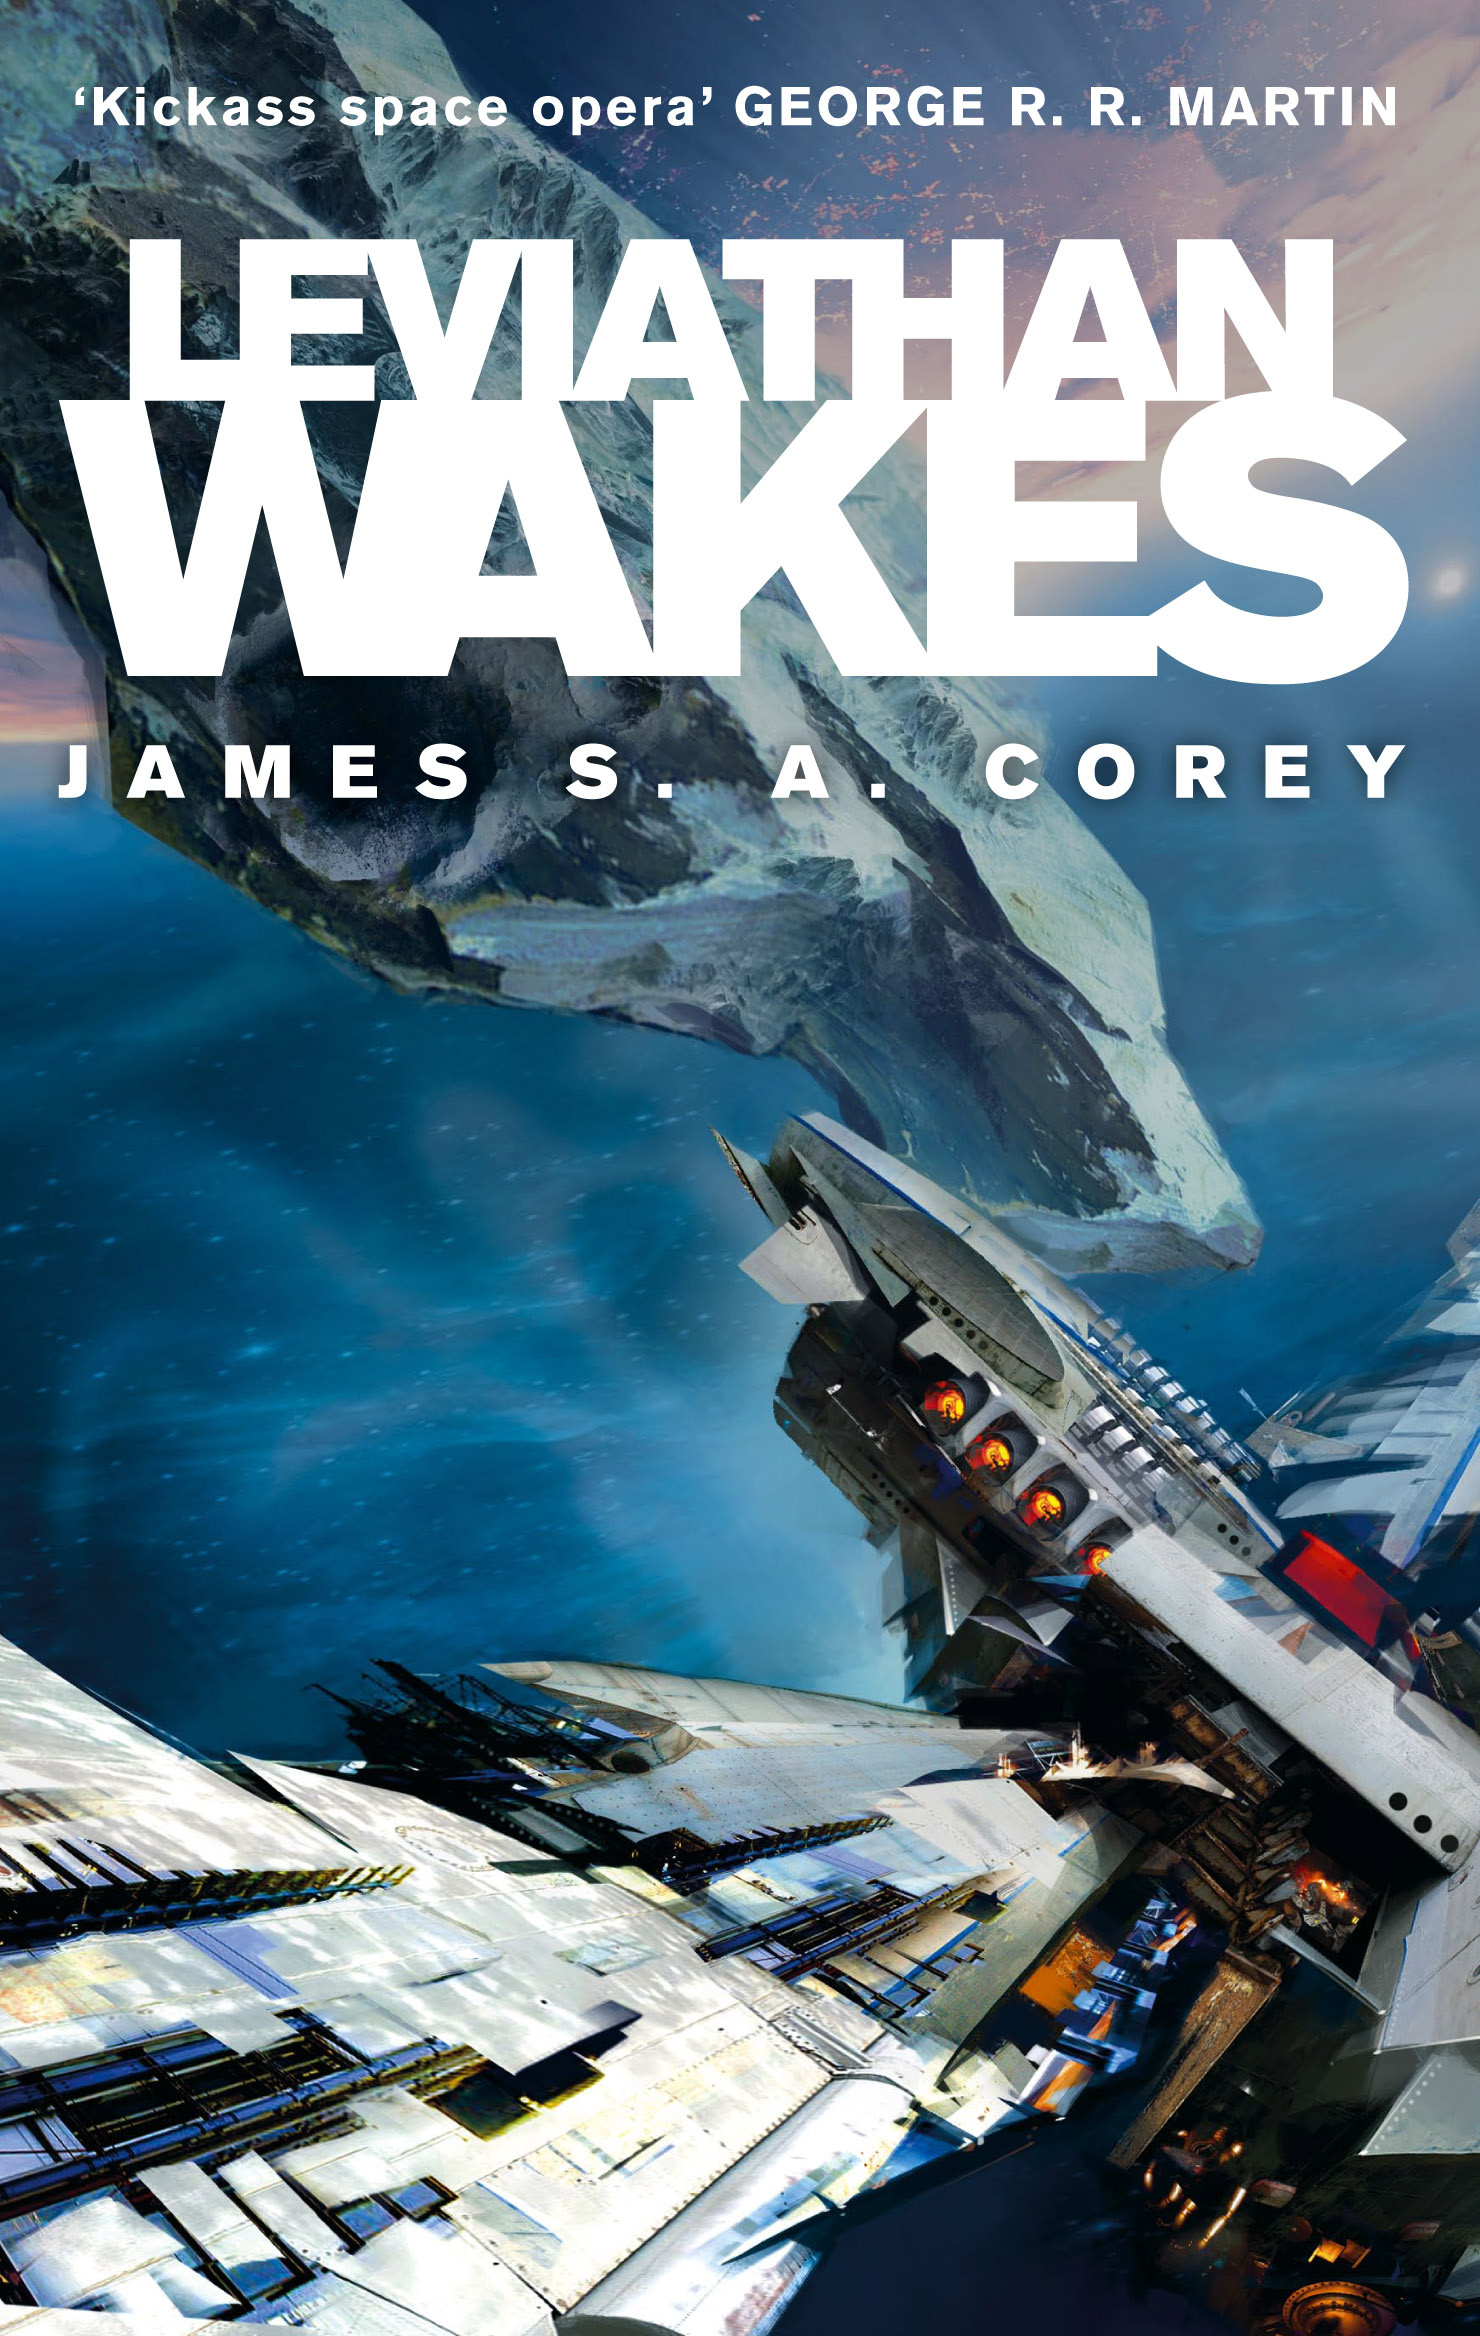 Leviathan Wakes: Book 1 of the Expanse (now a major TV series on Netflix) by James S. A. Corey, ISBN: 9781841499895